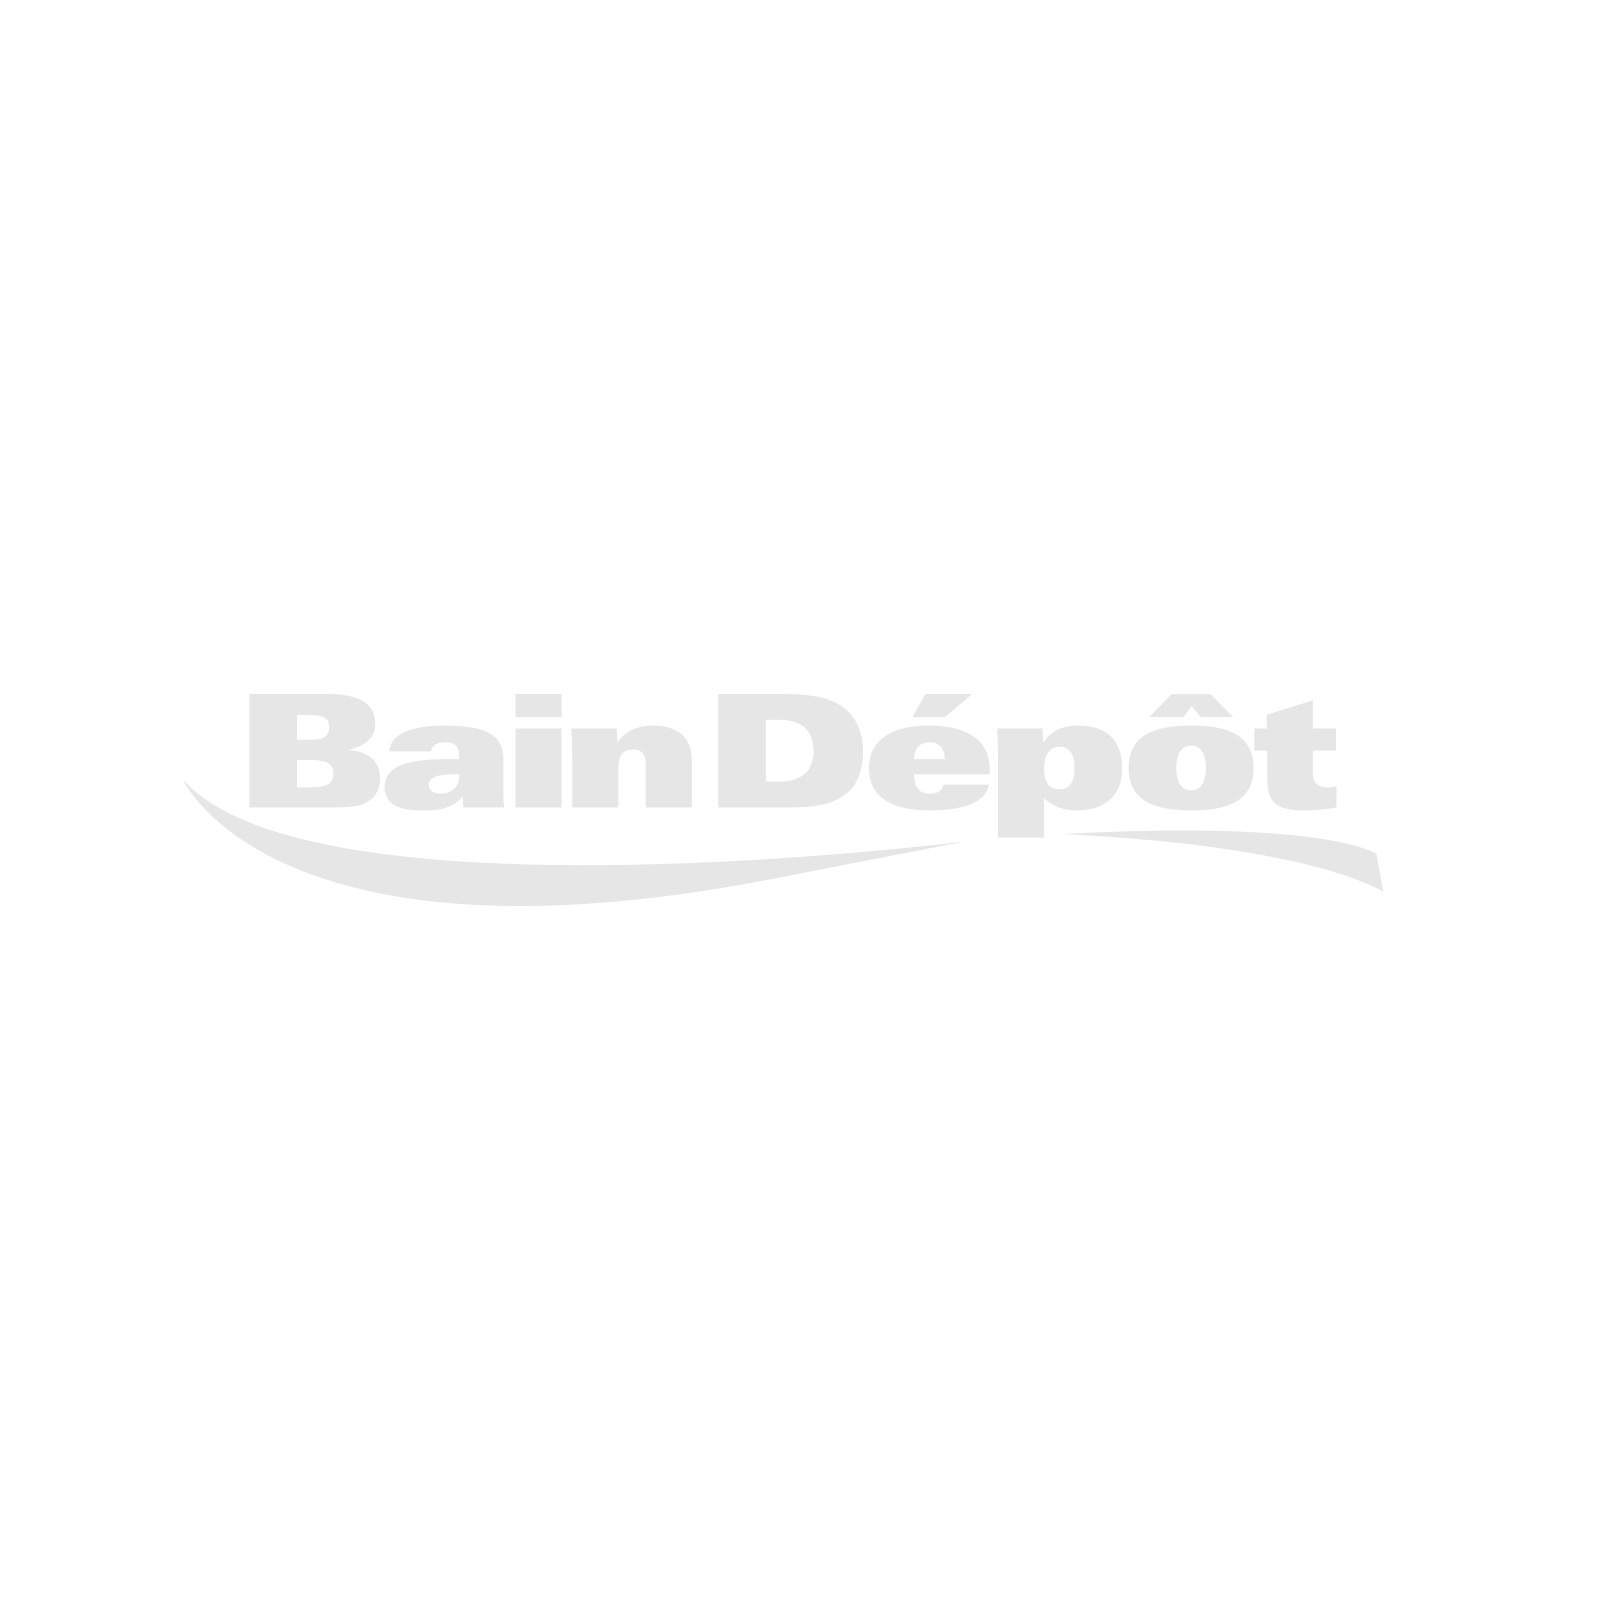 WARMUP - FOIL for carpet, laminate and wood floors covering 130 square feet